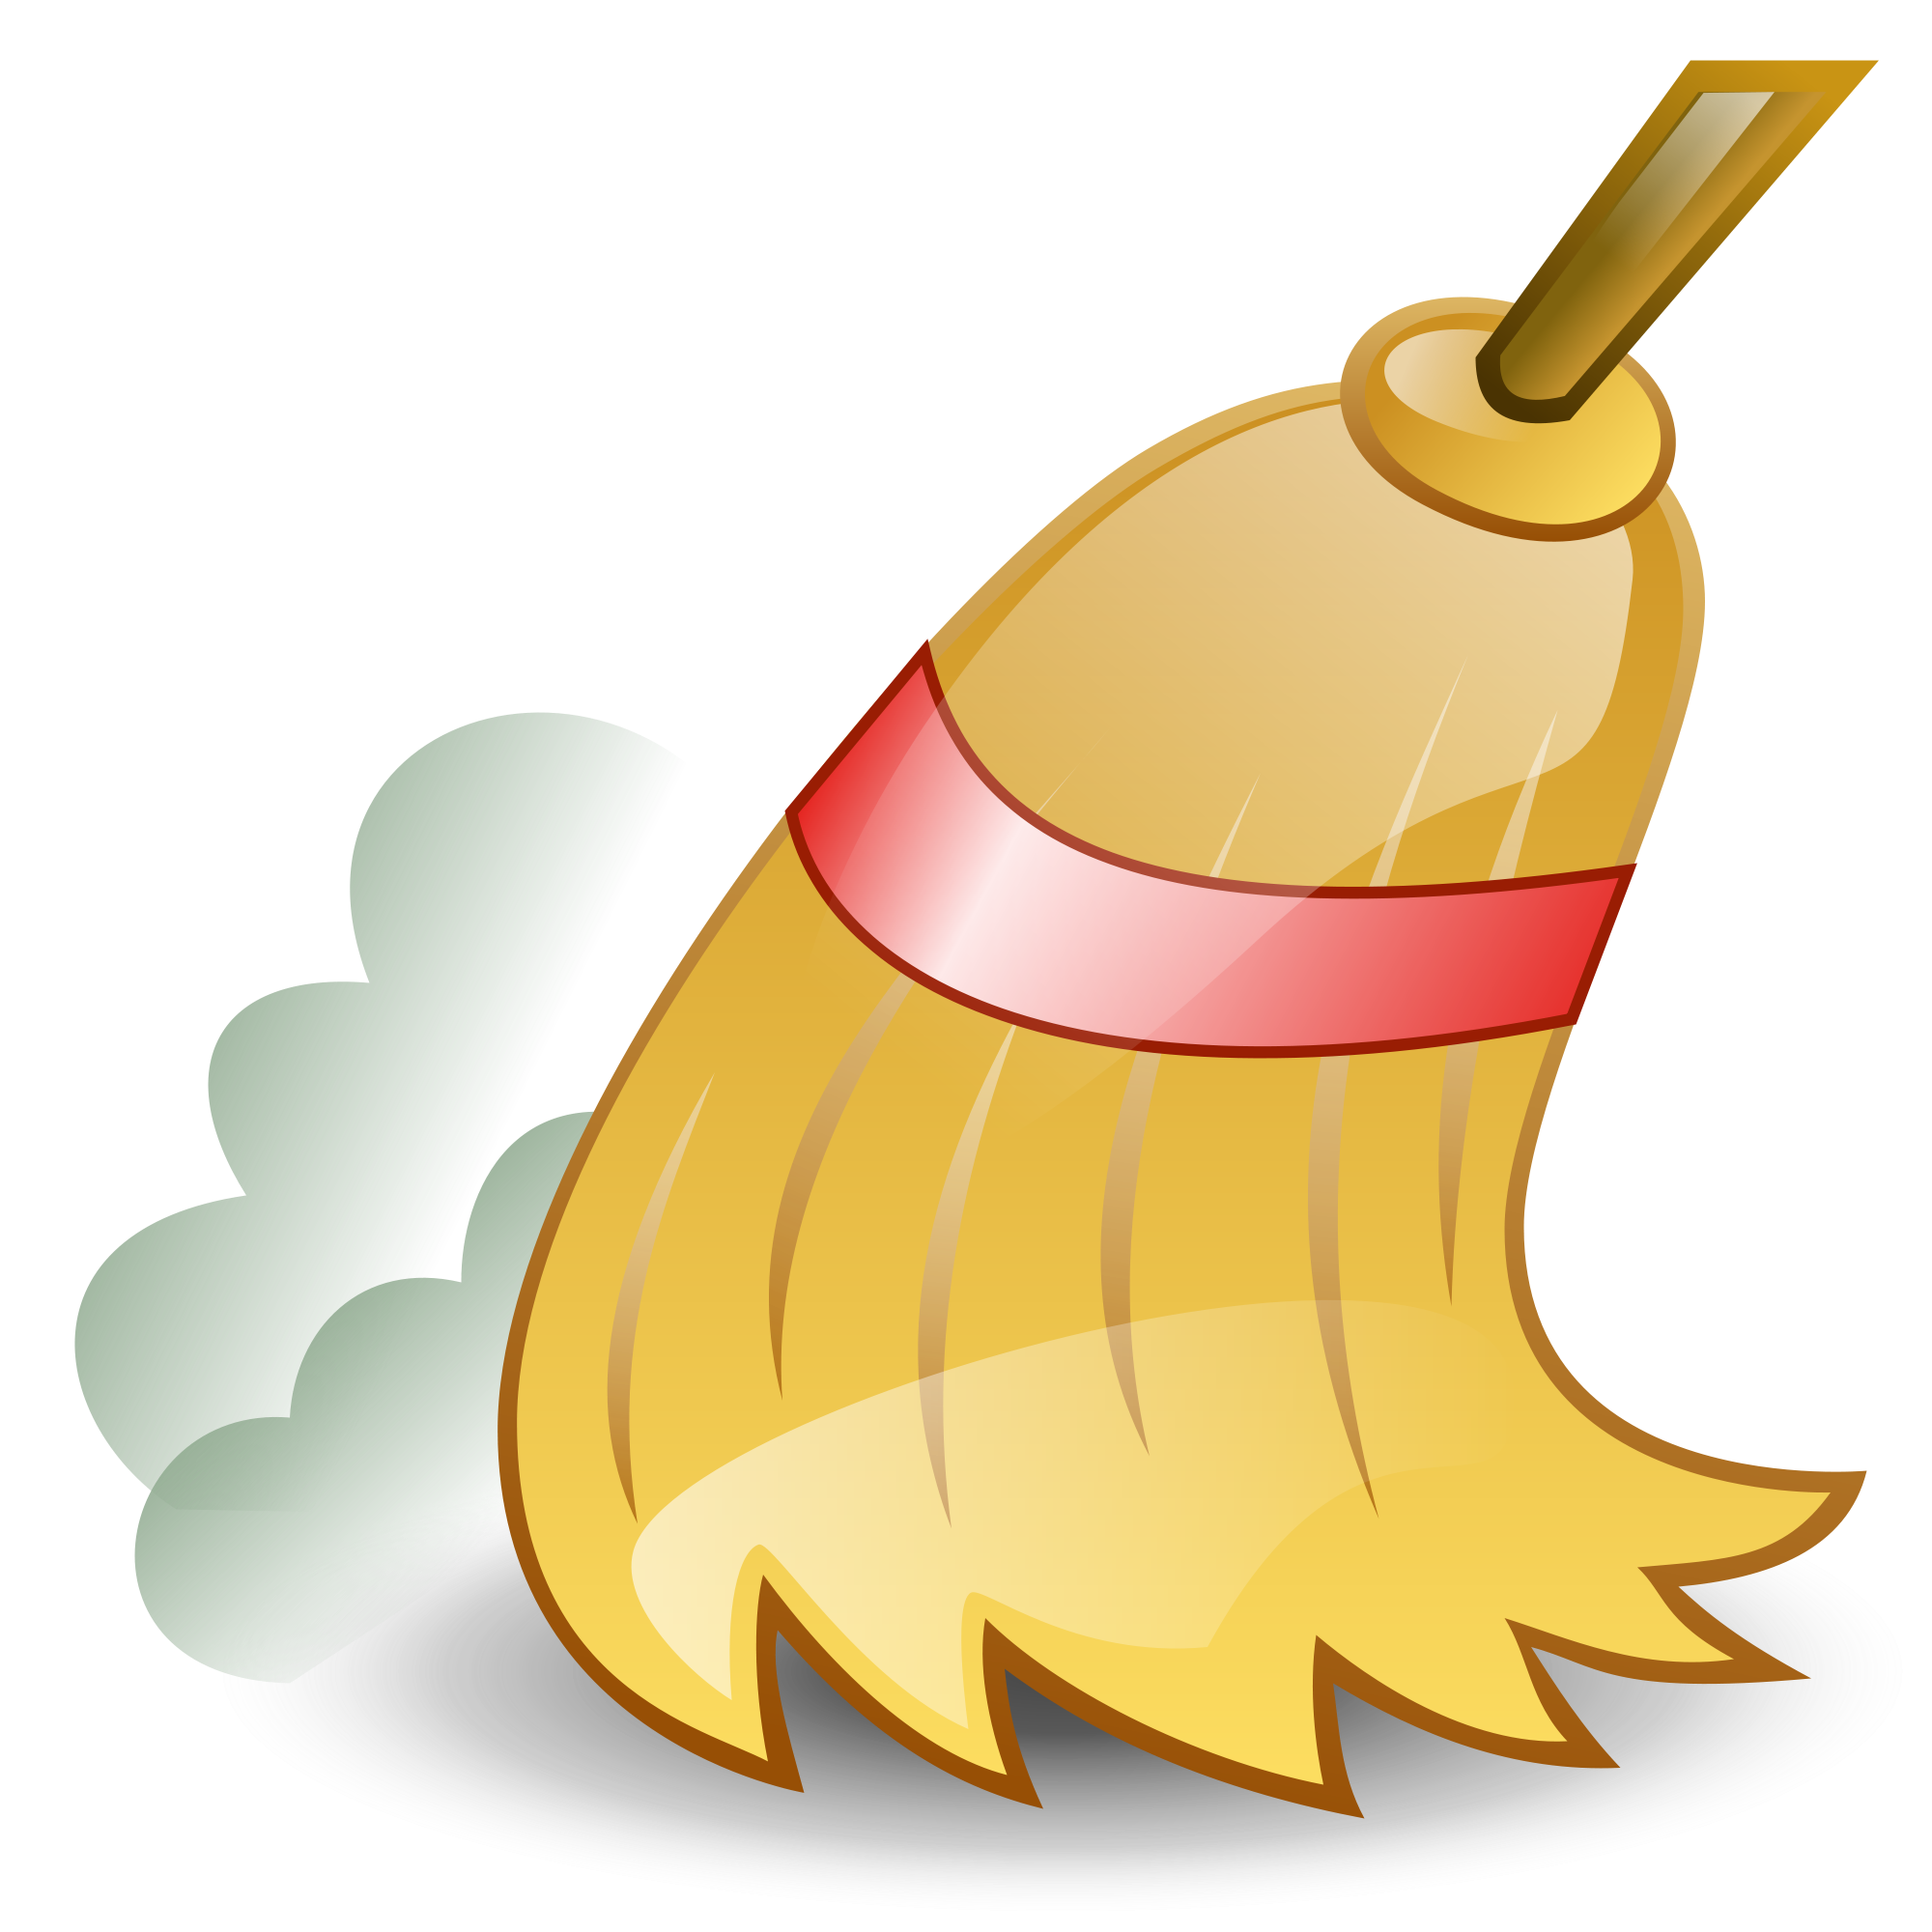 Broom clipart baseball sweep. Do not lean a